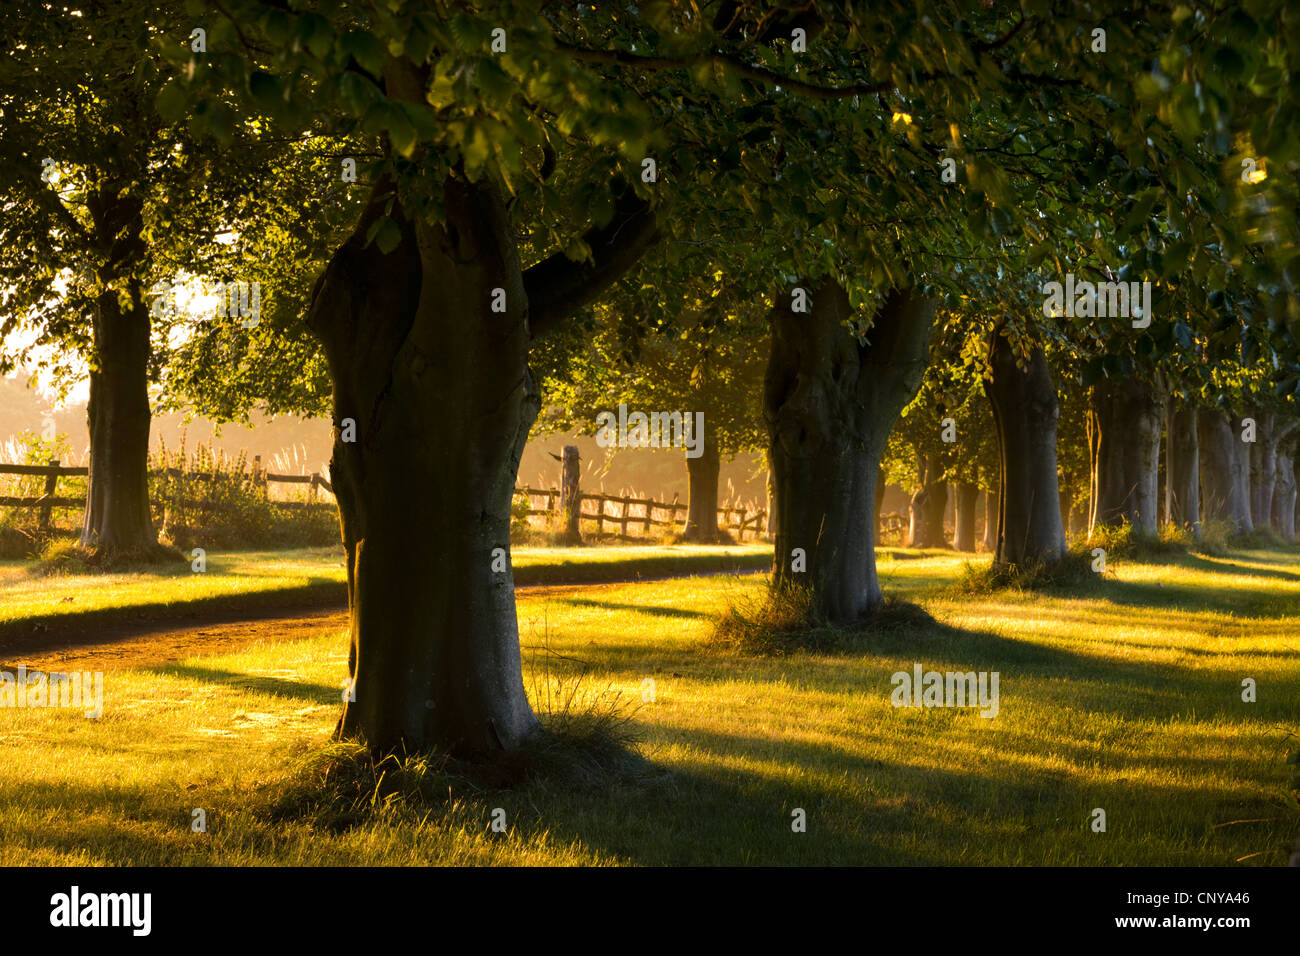 Golden morning sunlight illuminating an avenue of trees in the Cotswolds, Gloucestershire, England. Summer 2011. - Stock Image